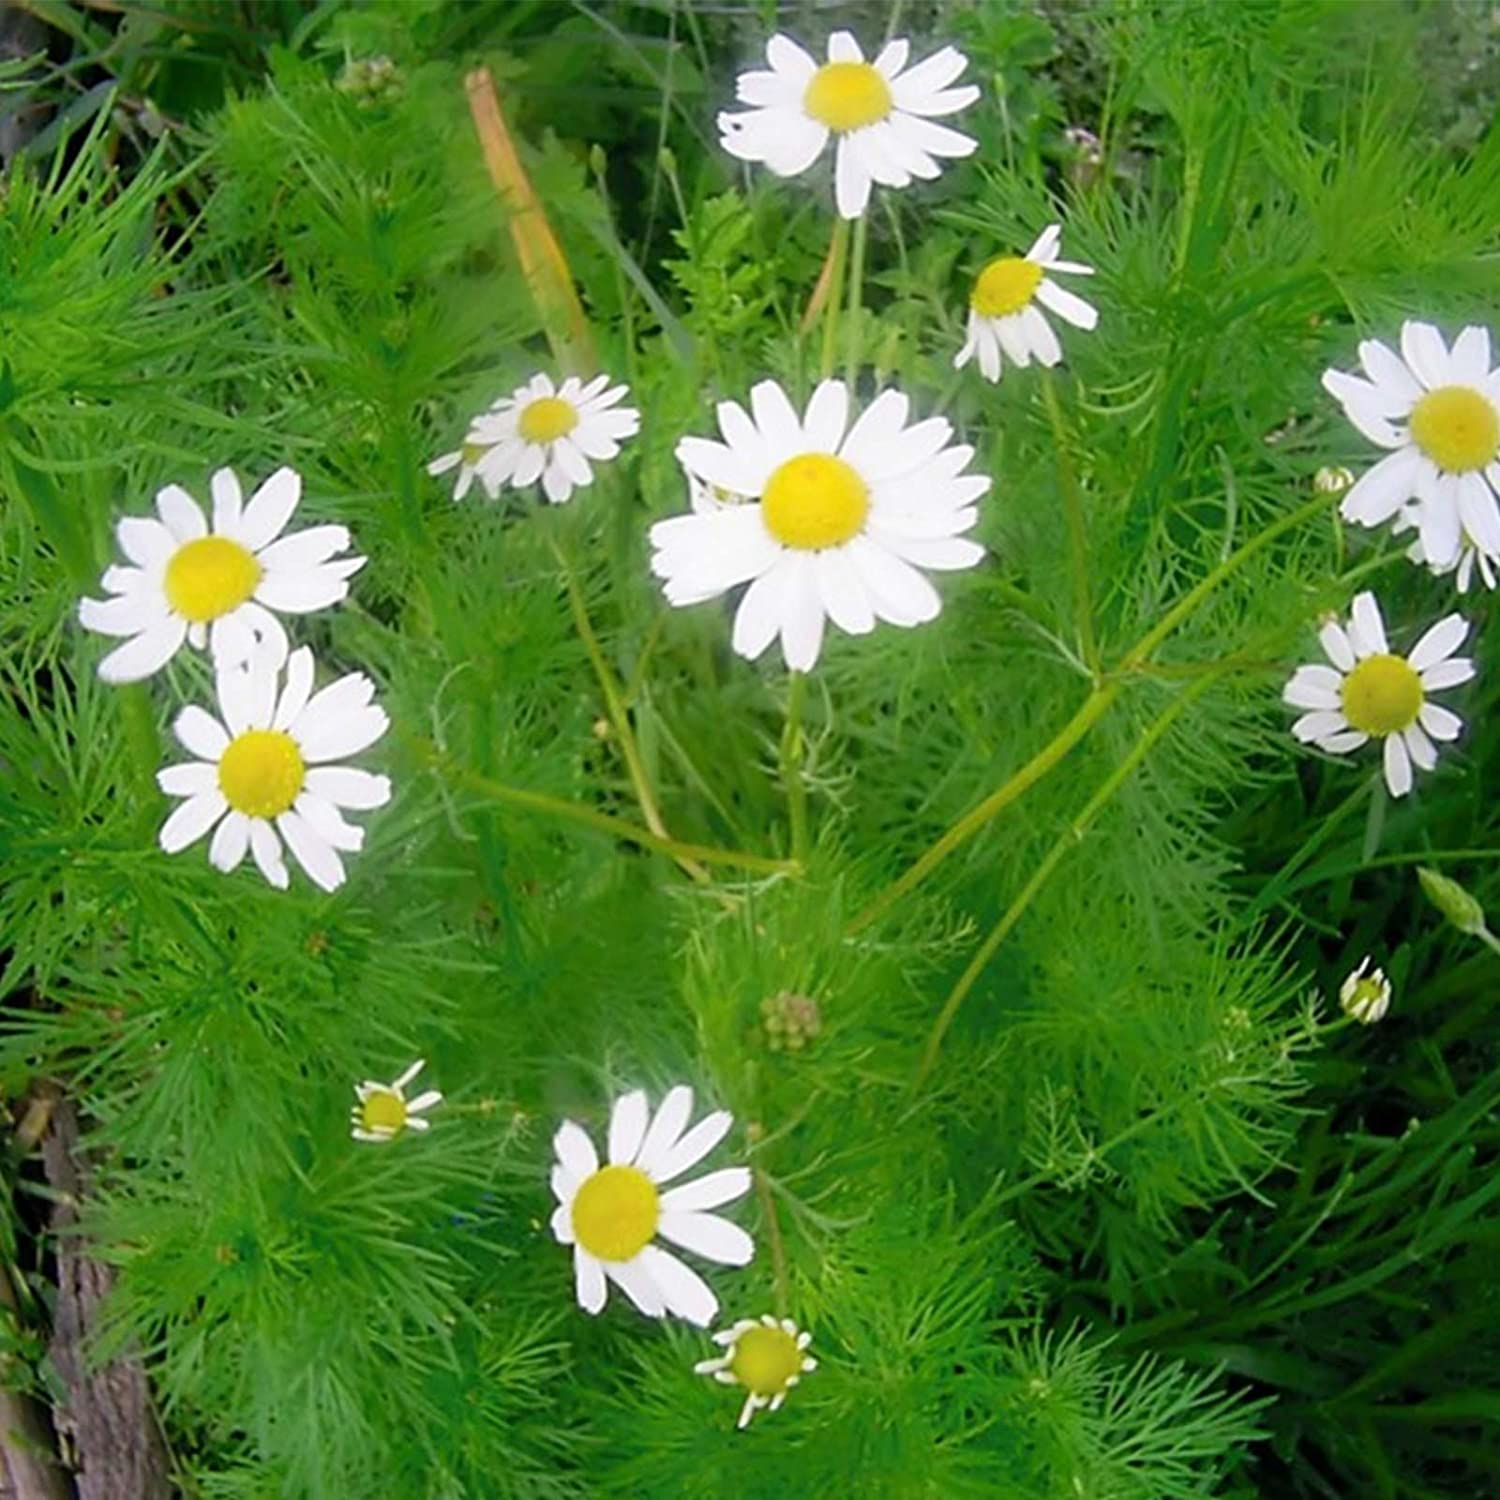 German Chamomile Popular overseas hẹrb S-E-E-D Order National products 200+ W Marigolds